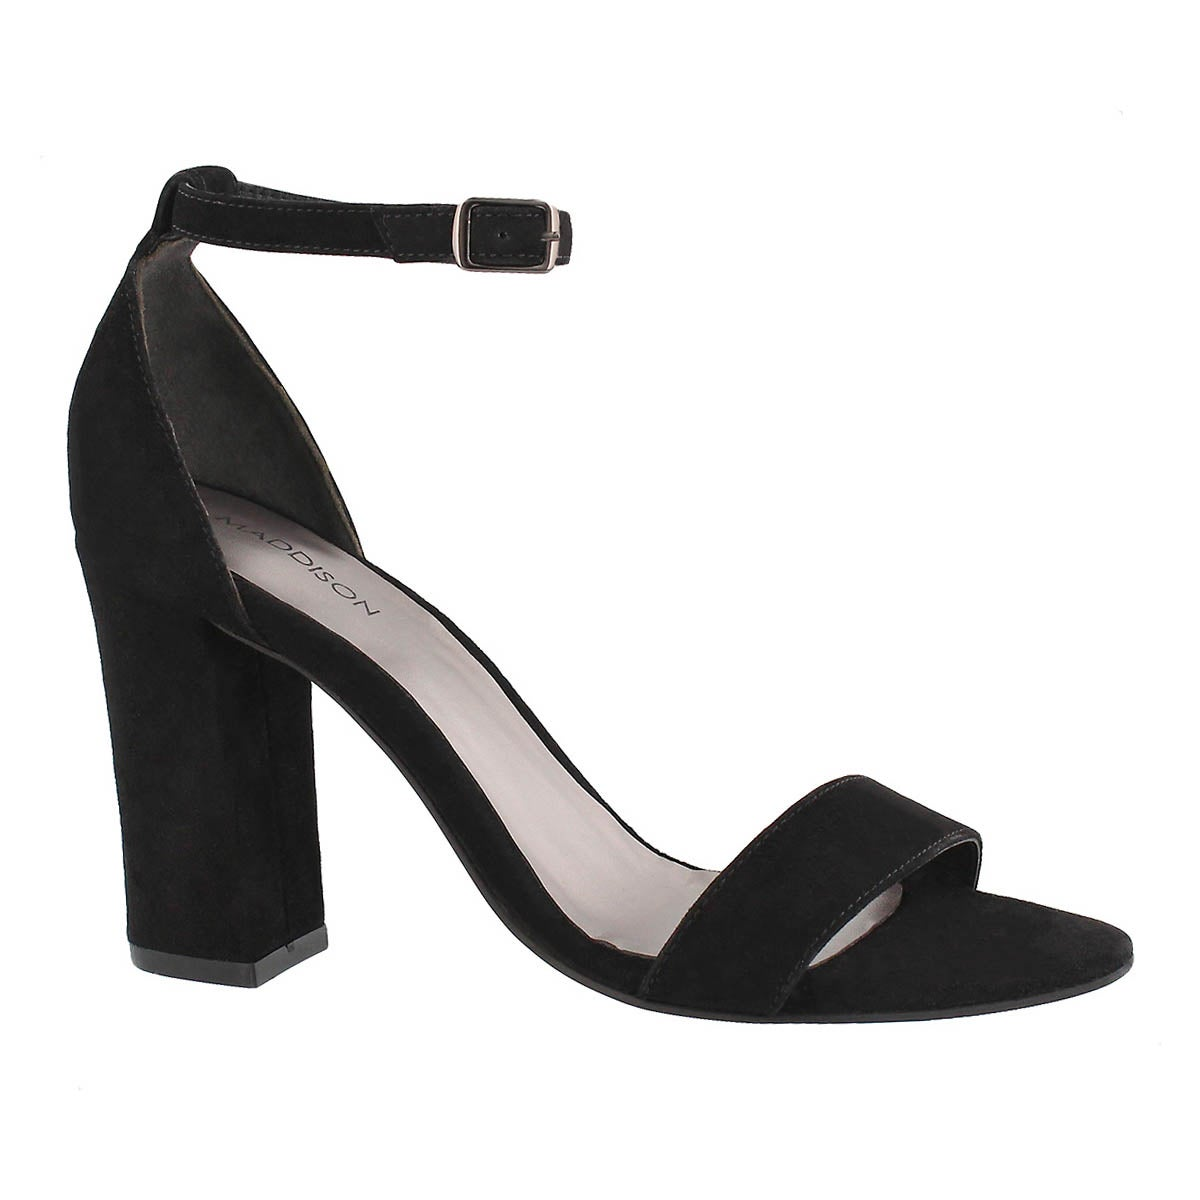 Women's FLORETTE black dress sandal